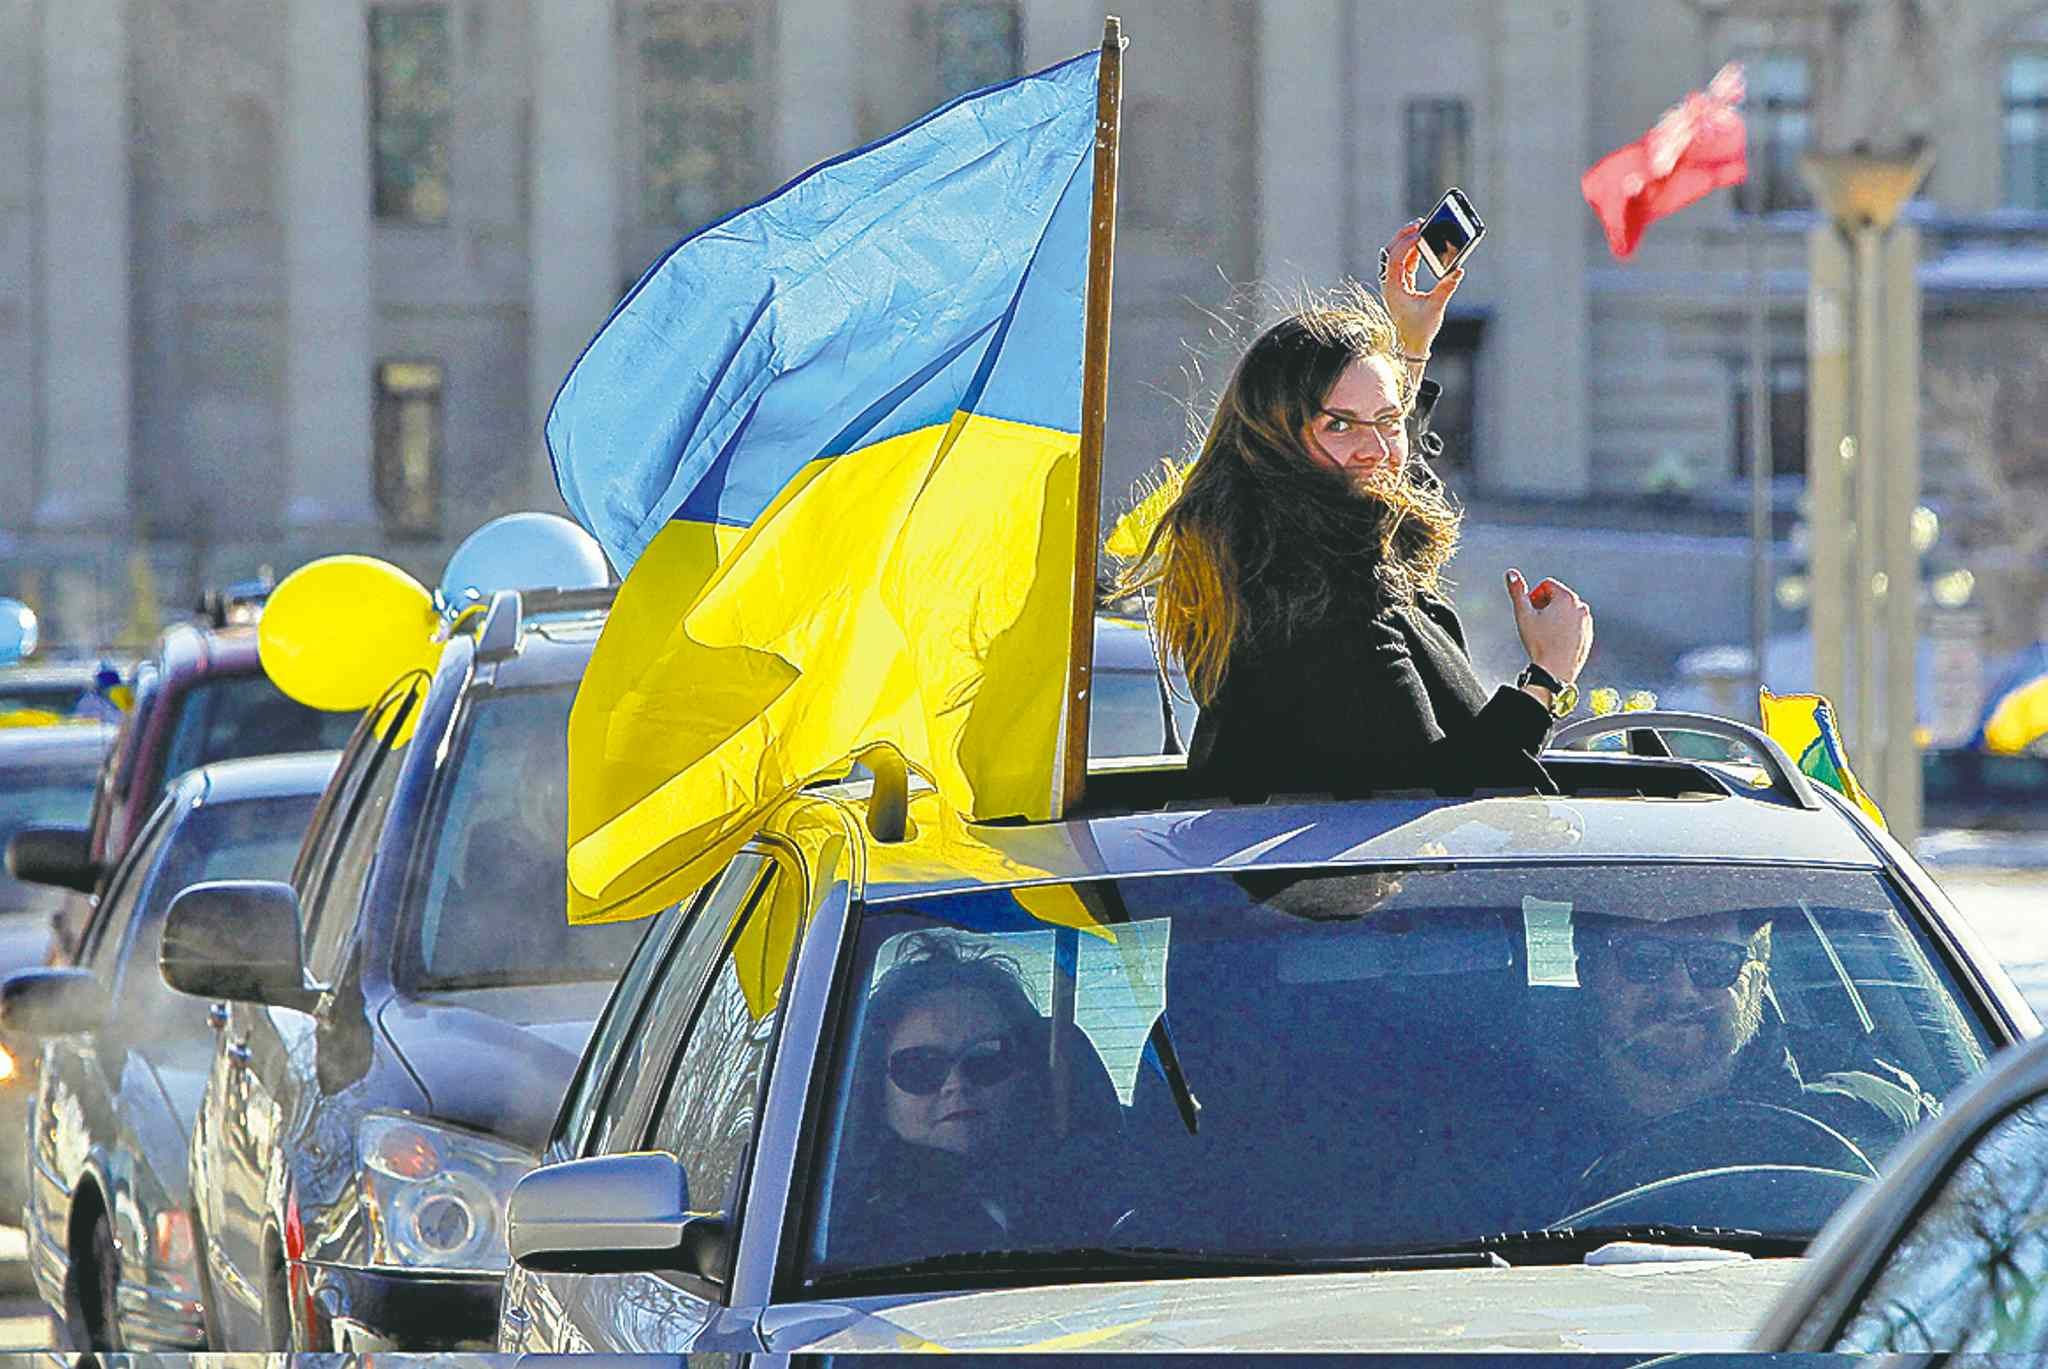 Daria Lytwyn tries to get a quick photo of the procession while taking part in a car rally in Winnipeg Sunday.